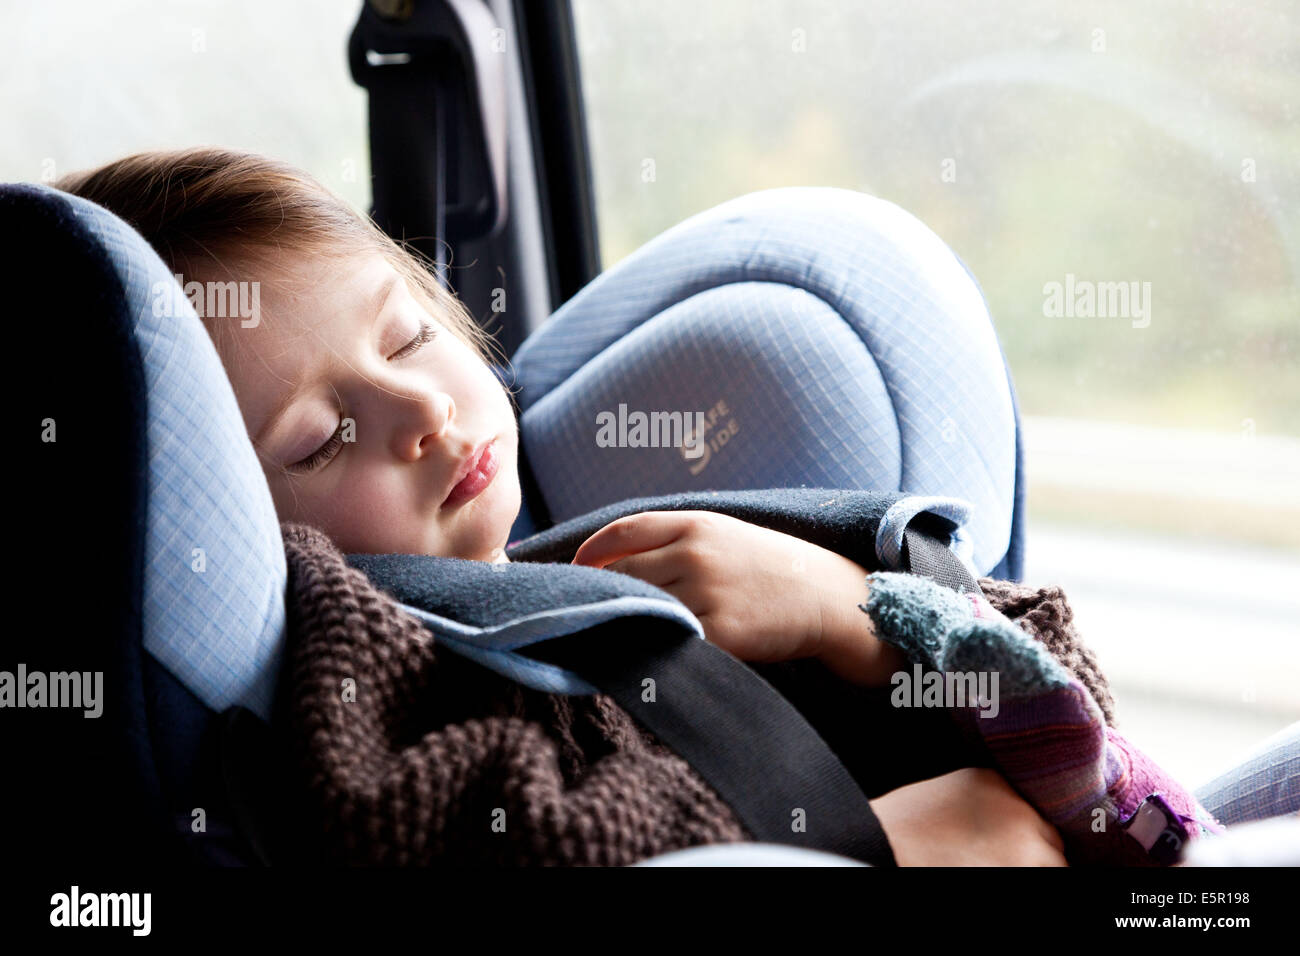 3 Year Old Girl In A Baby Car Seat